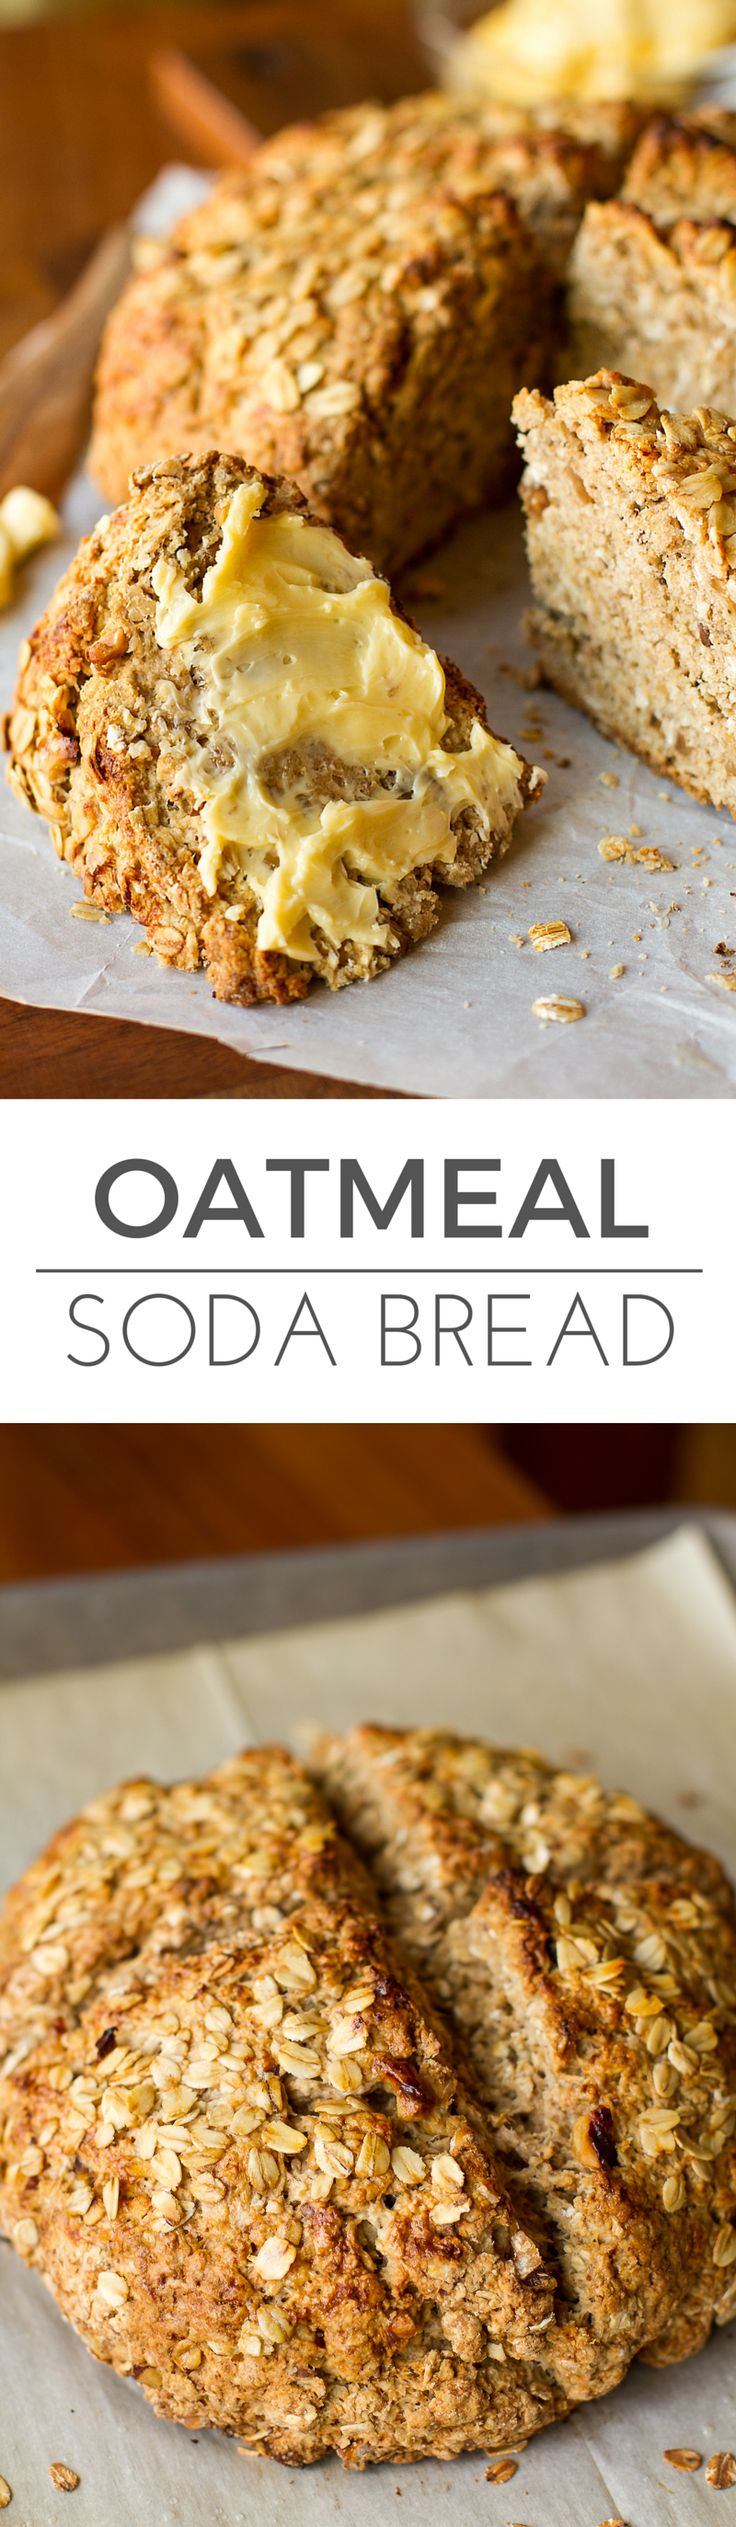 Irish Walnut Oatmeal Soda Bread // Twist on the Classic Soda Bread Recipe